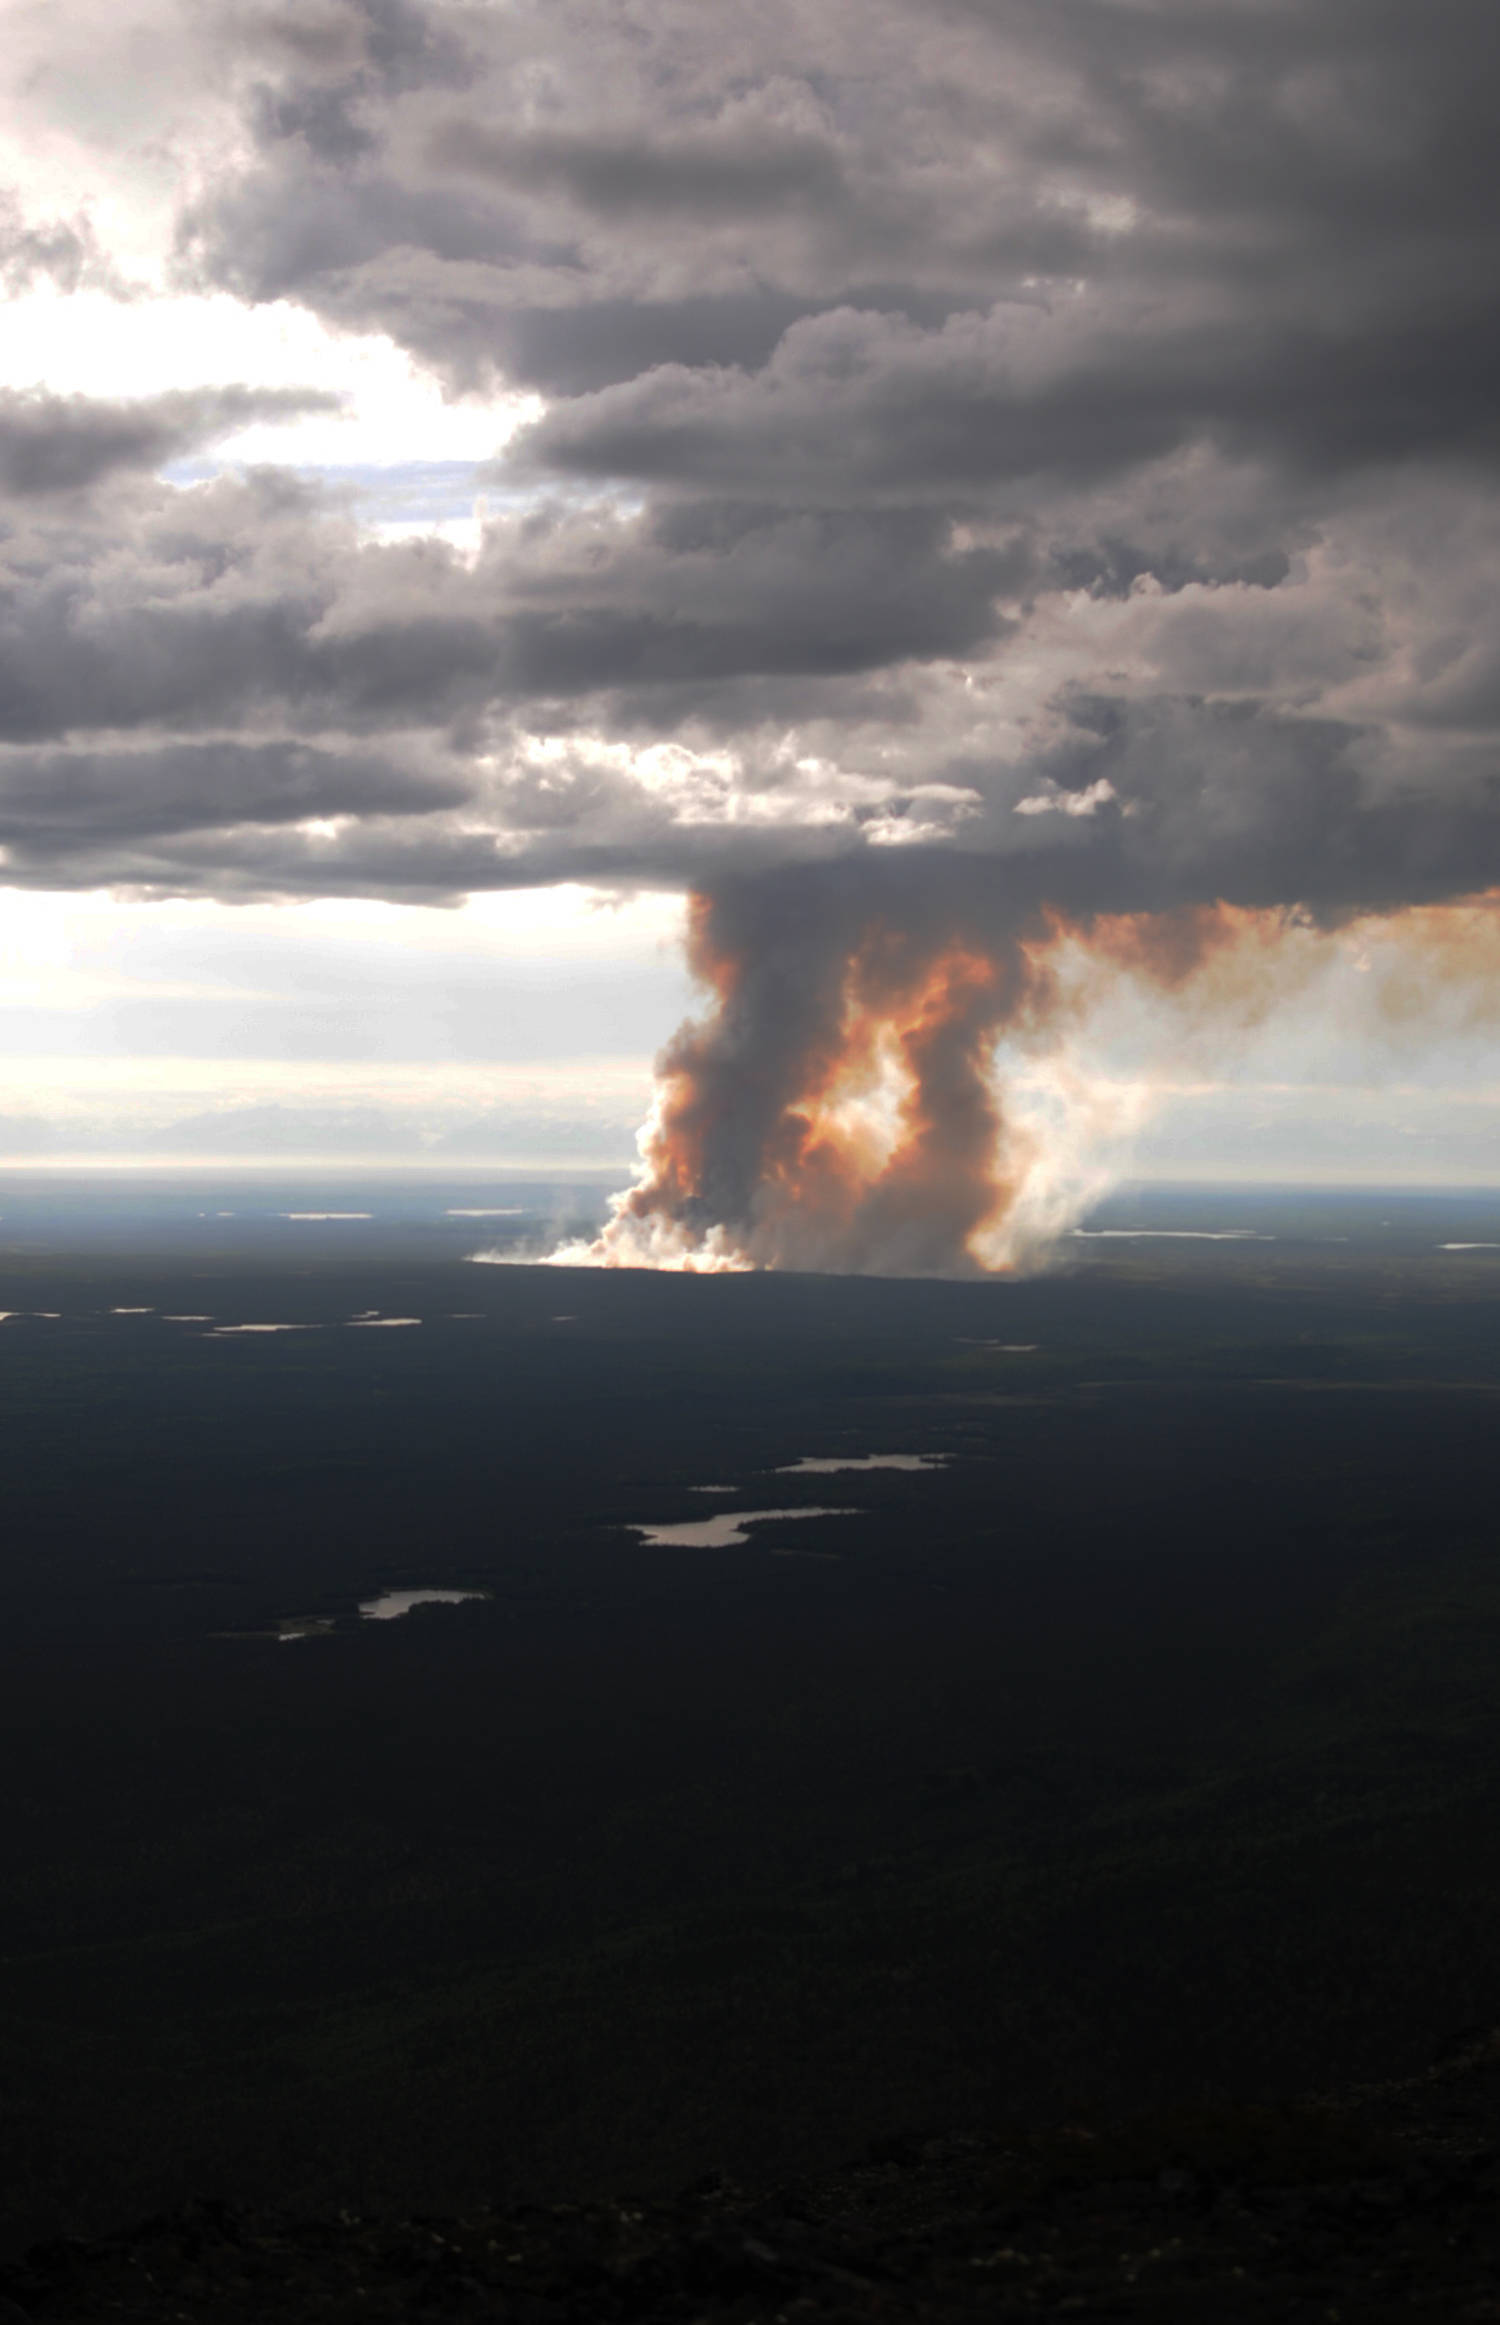 Smoke rises from the burn area of the East Fork Fire on the Kenai National Wildlife Refuge on Friday, June 16, 2017 near Sterling, Alaska. The fire, sparked by dry lightning, had burned about 850 acres by Friday night. (Photo by Elizabeth Earl/Peninsula Clarion)